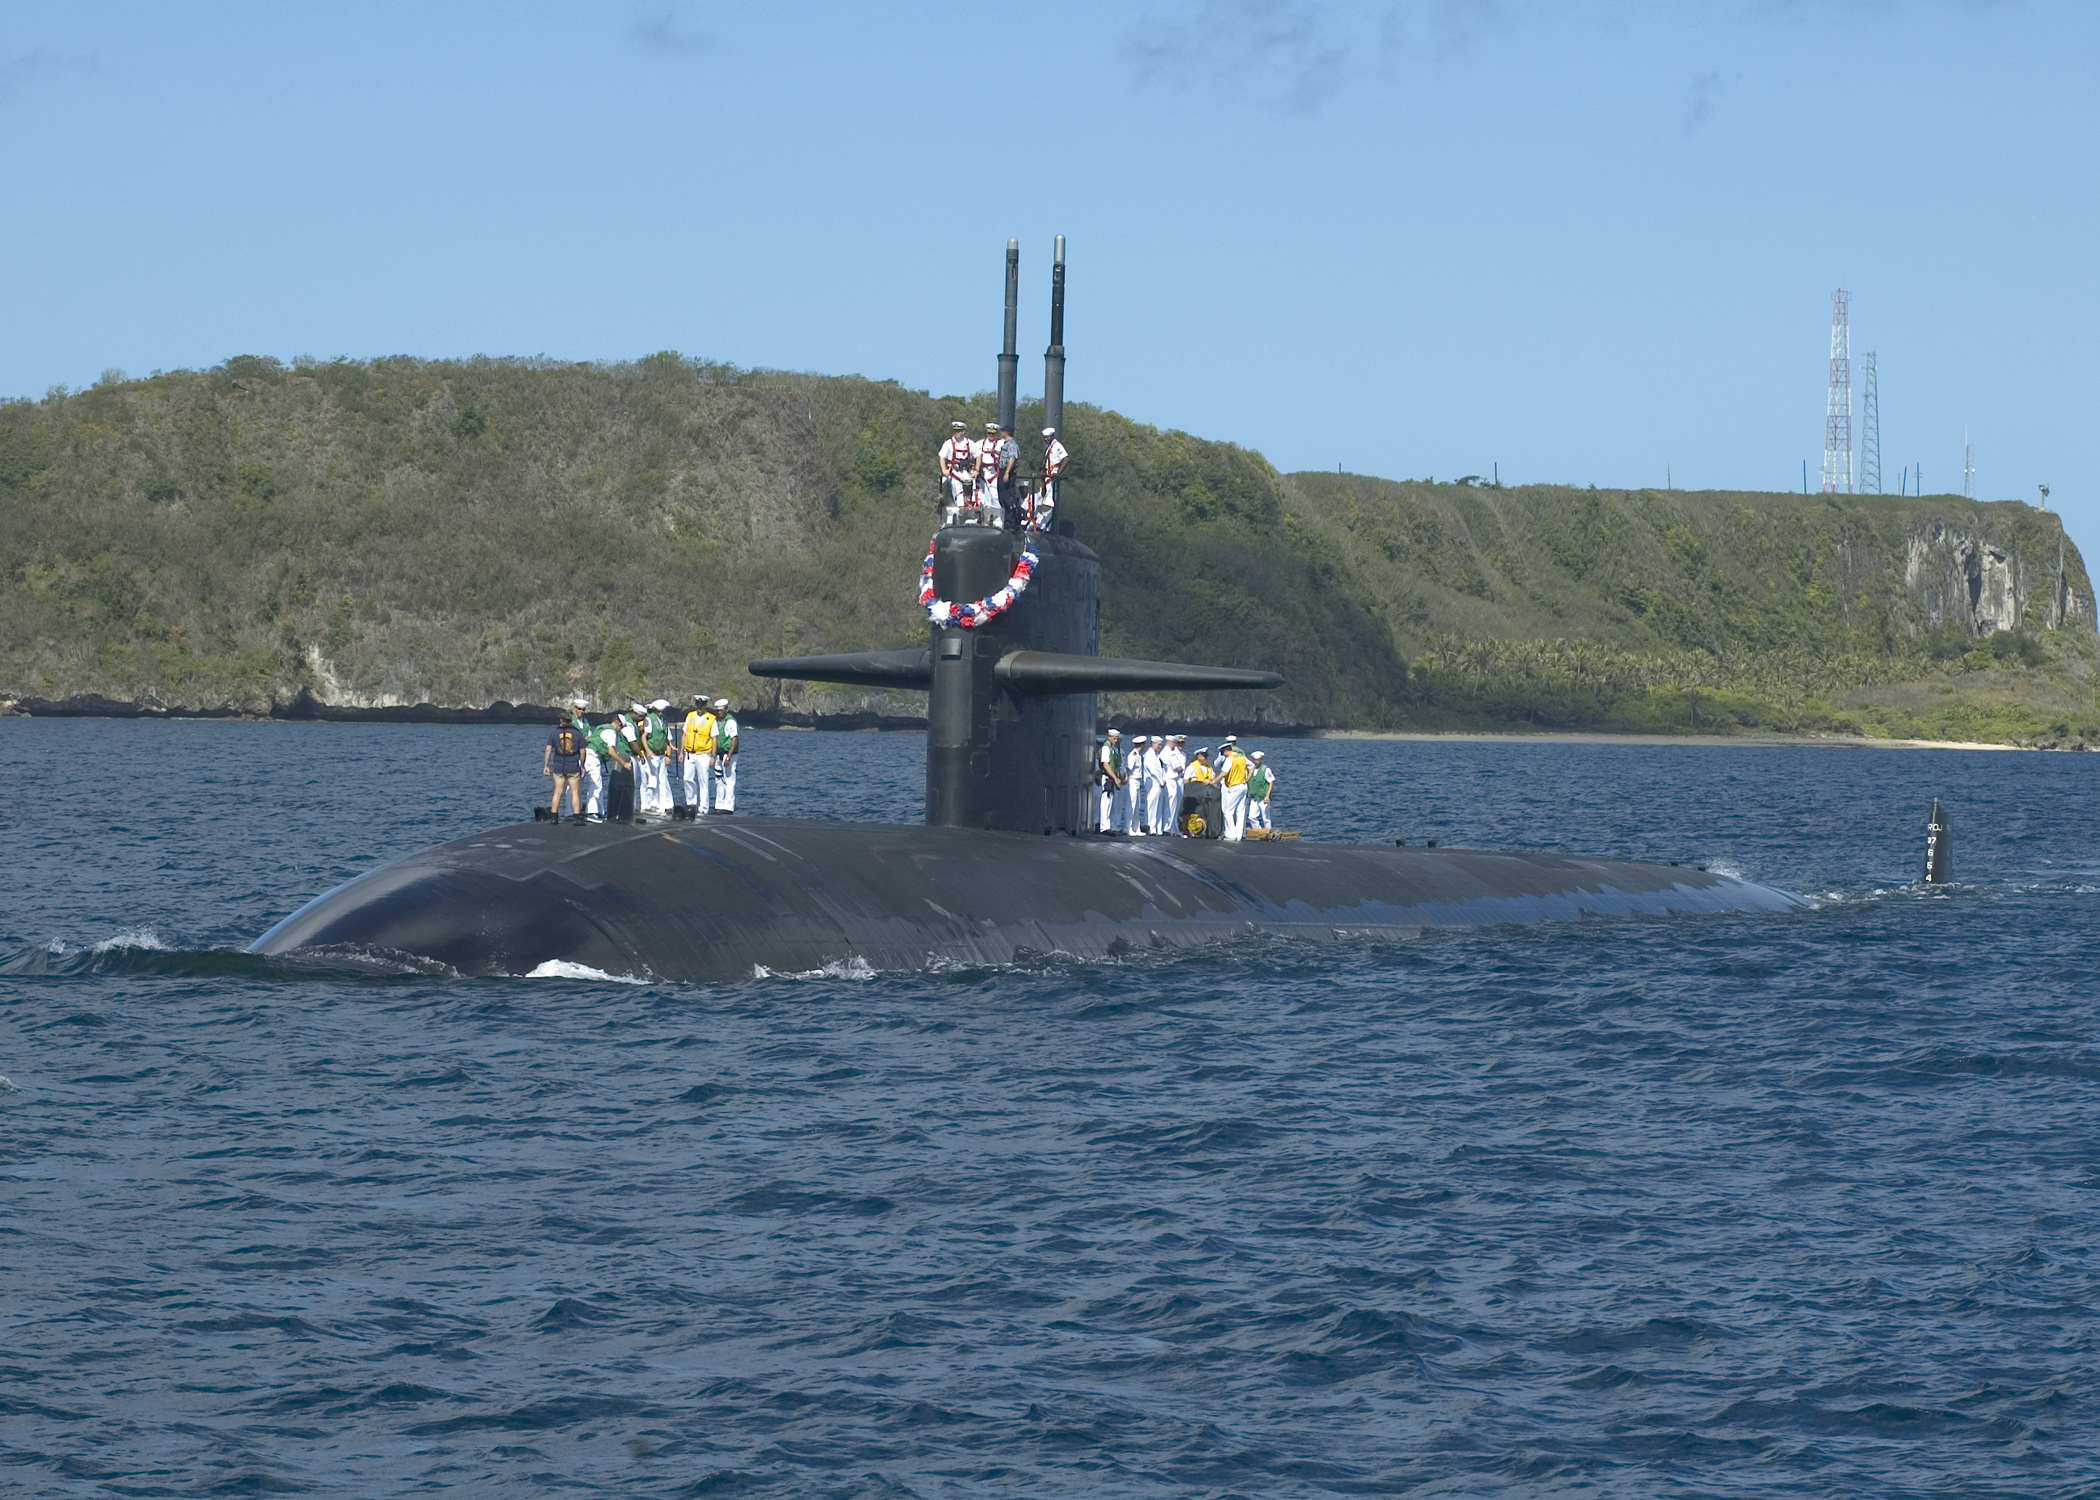 060525-N-9662L-113 Santa Rita, Guam (May 25, 2006) Ð The fast attack submarine USS City of Corpus Christi (SSN 705) sails into Apra Harbor after performing a routine underway. The City of Corpus Christi is currently home ported at Naval Base Guam, and is the 18th Los Angeles-class attack submarine. U.S. Navy photo by PhotographerÕs Mate 2nd Class John F. Looney (RELEASED)